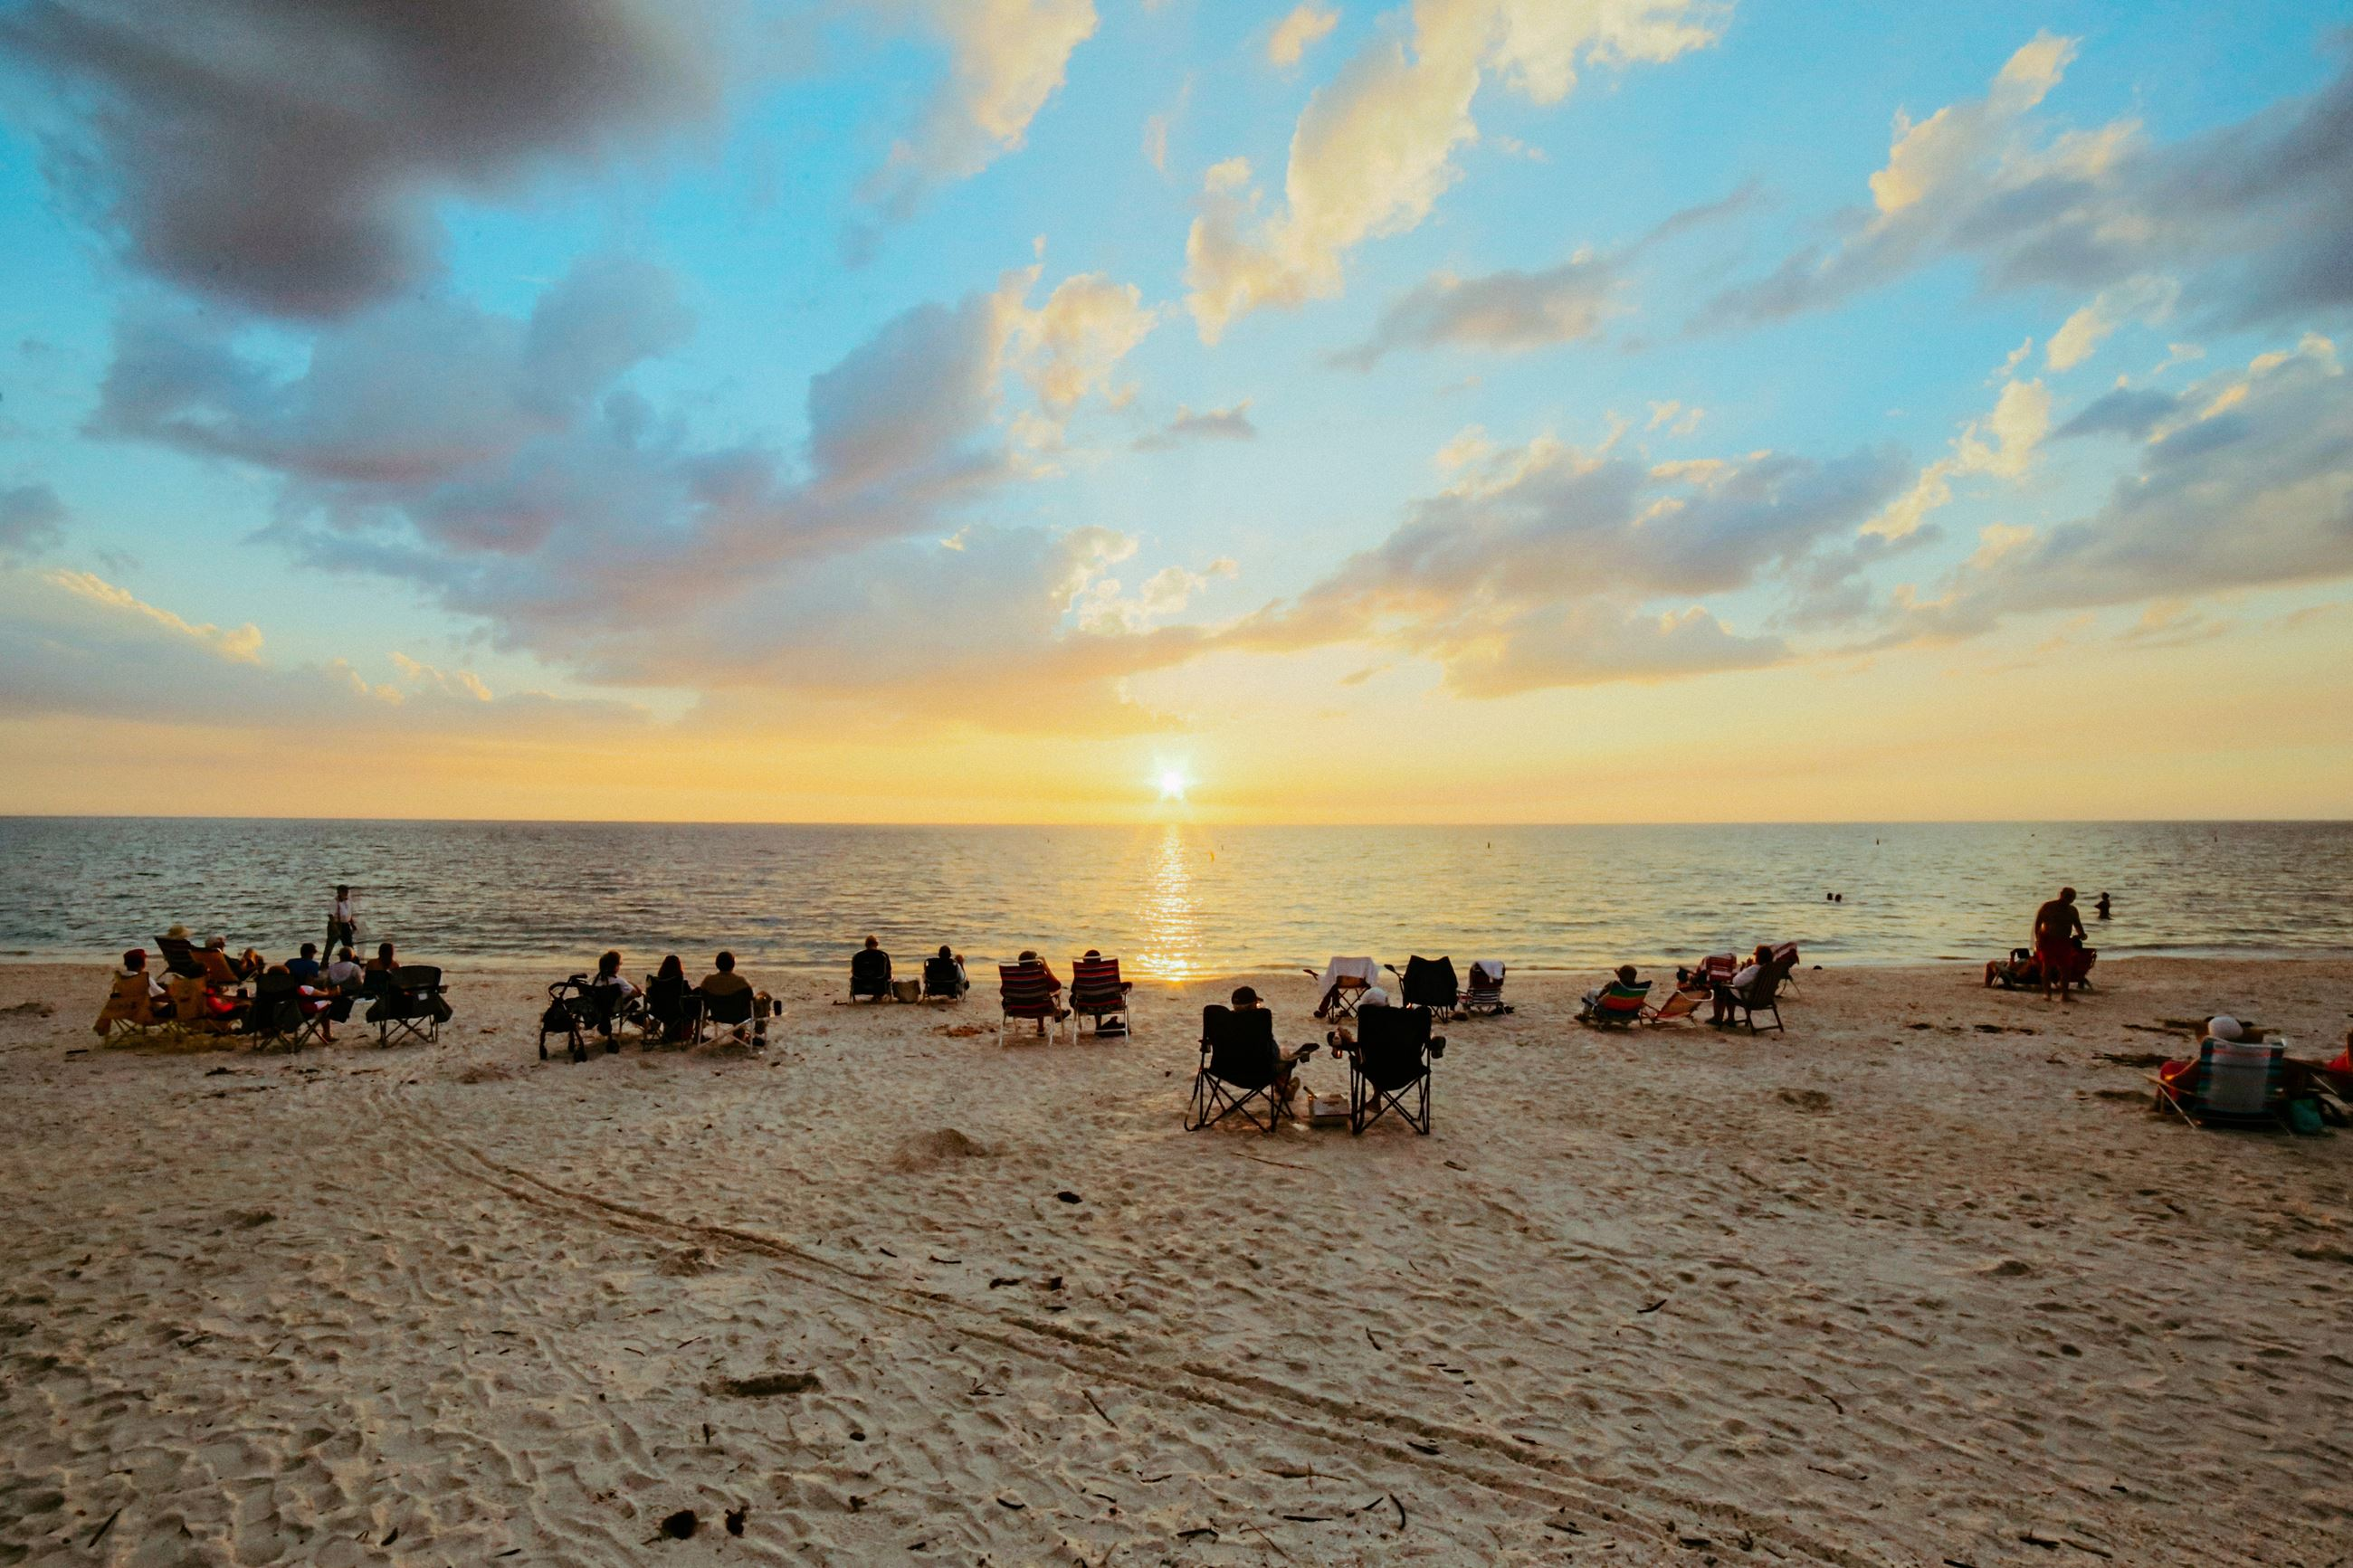 beach-beach-chairs-crowd-dawn-316798